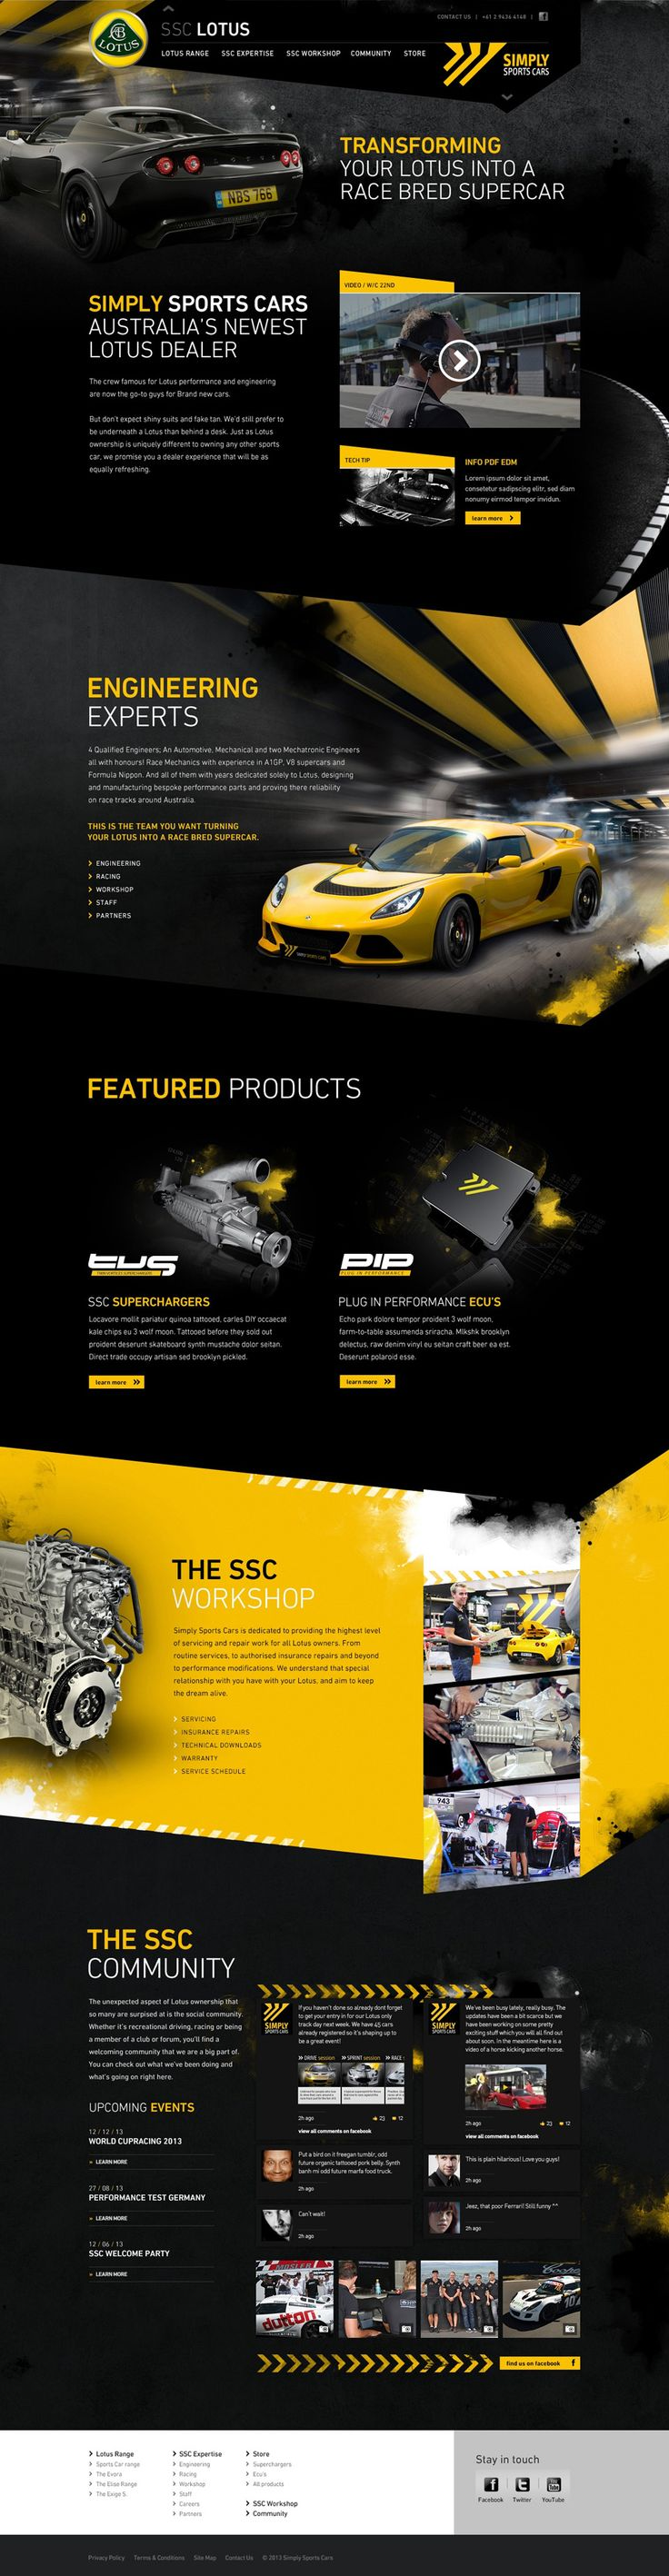 SSC LOTUS. Simply Sports Cars. Consistency of black and yellow pattern makes the whole layout flow even though each section is differently laid out